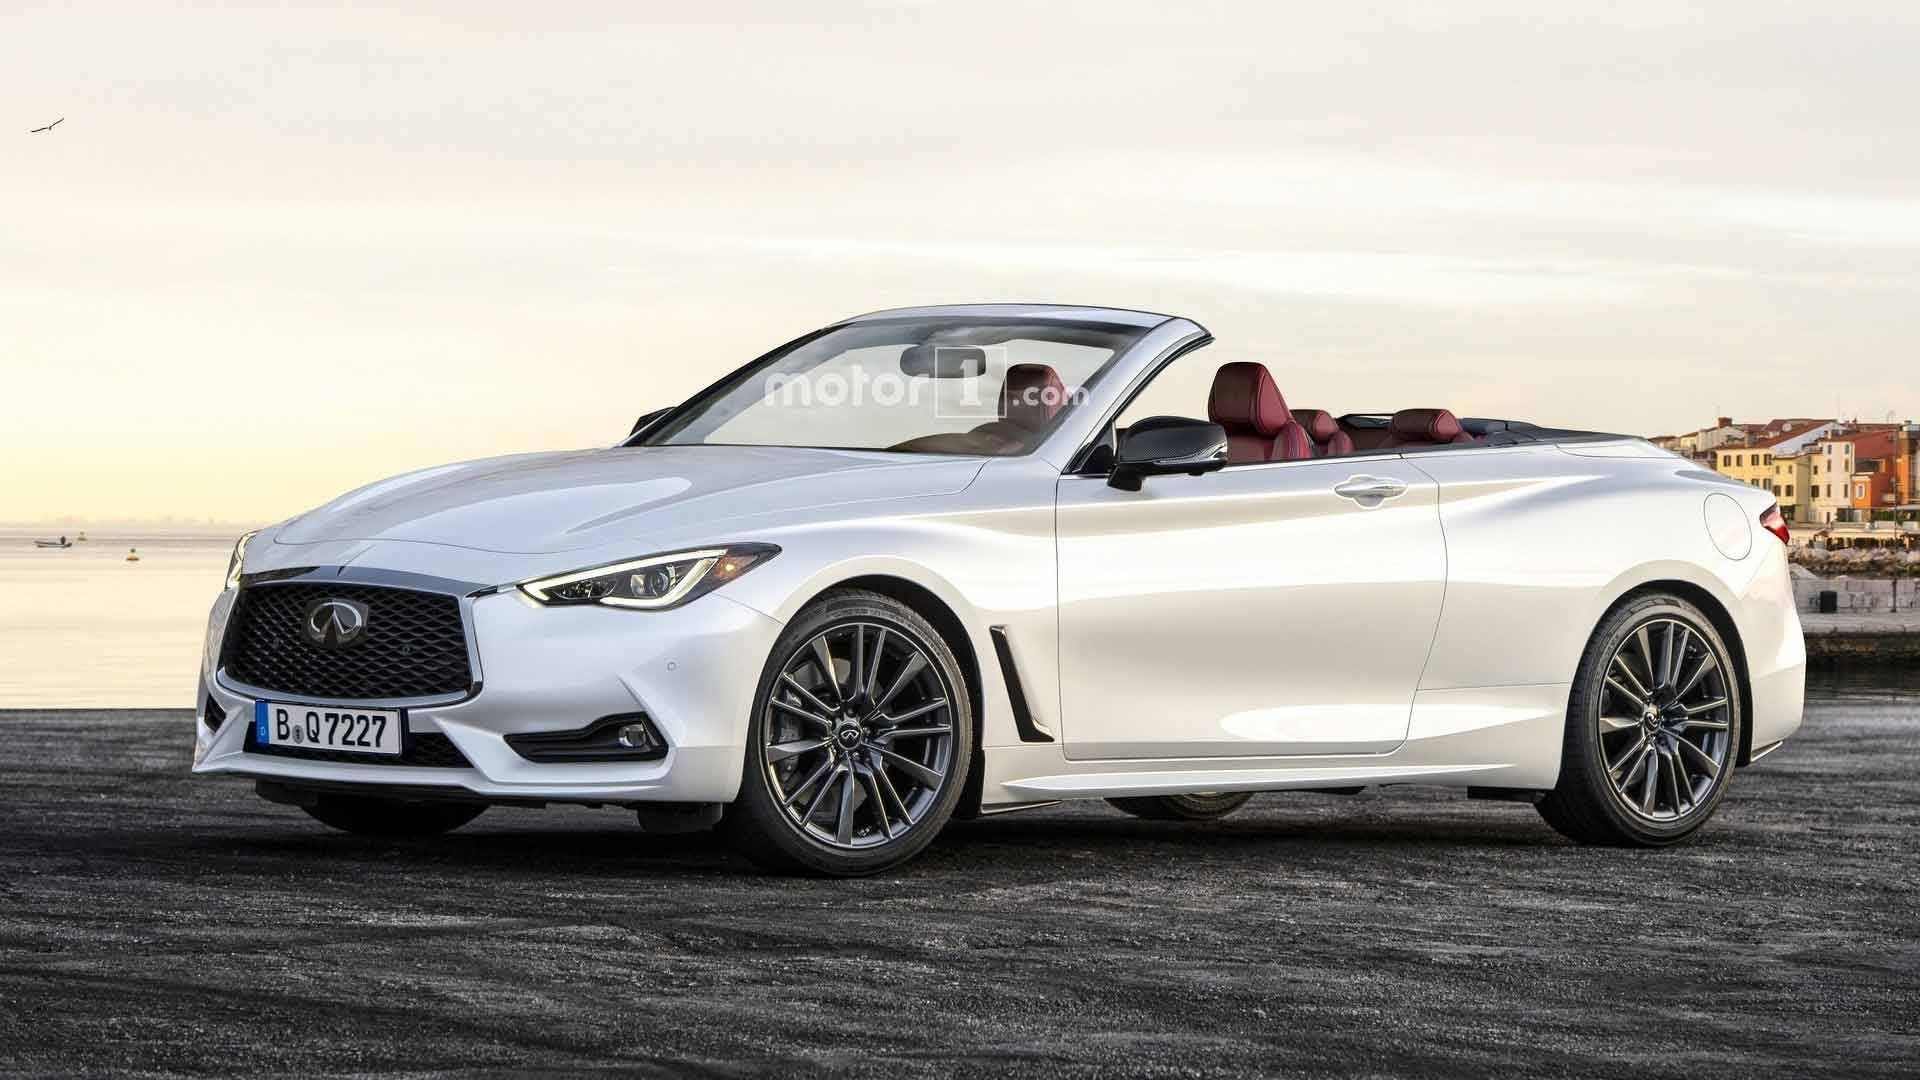 2020 Infiniti Q60 Coupe Convertible Launch Date And Idea In 2020 Infiniti G37 G37 Convertible Infiniti